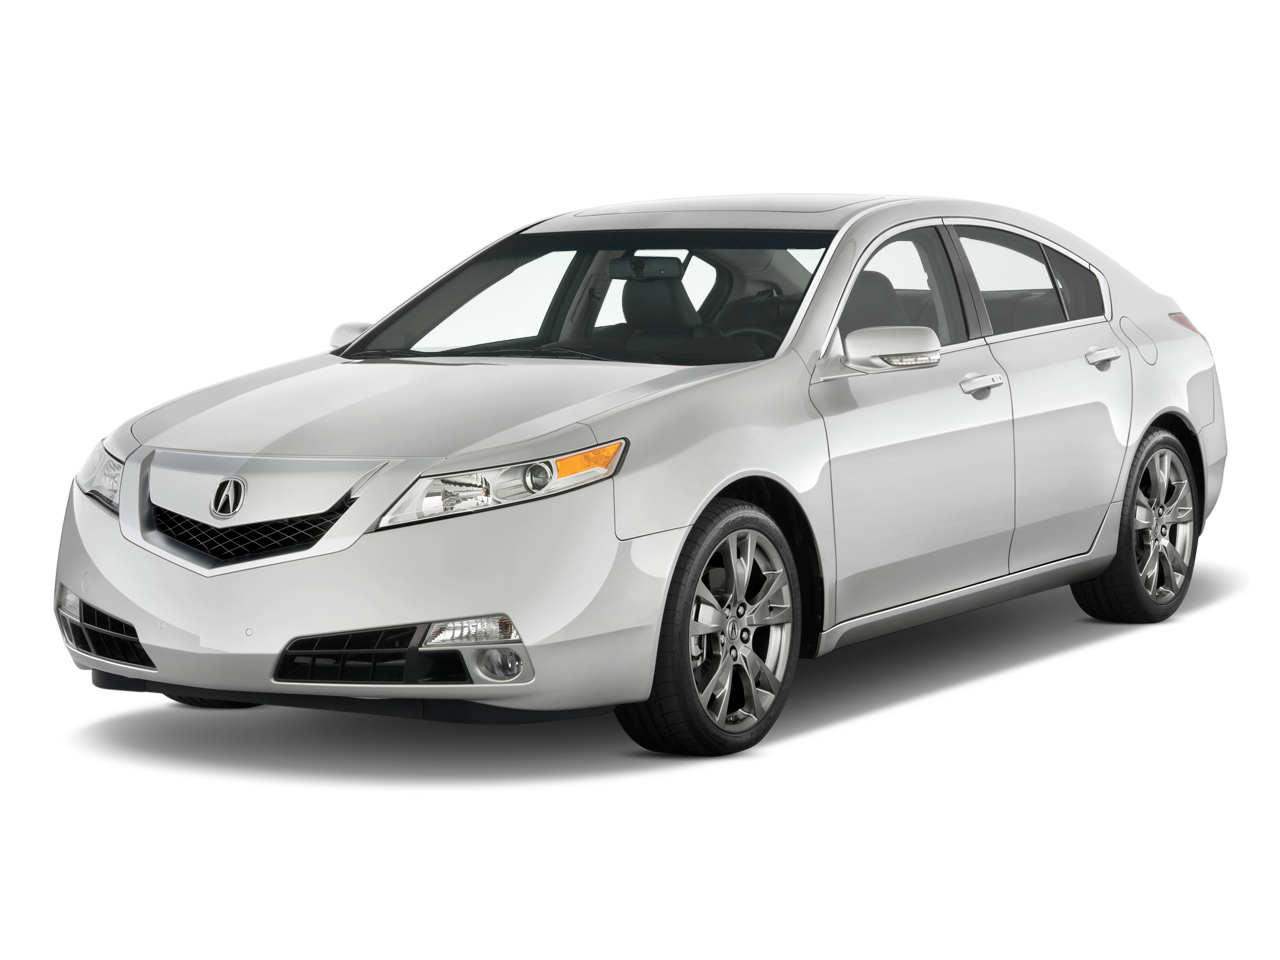 2009 acura tl sh awd acura luxury sedan review. Black Bedroom Furniture Sets. Home Design Ideas